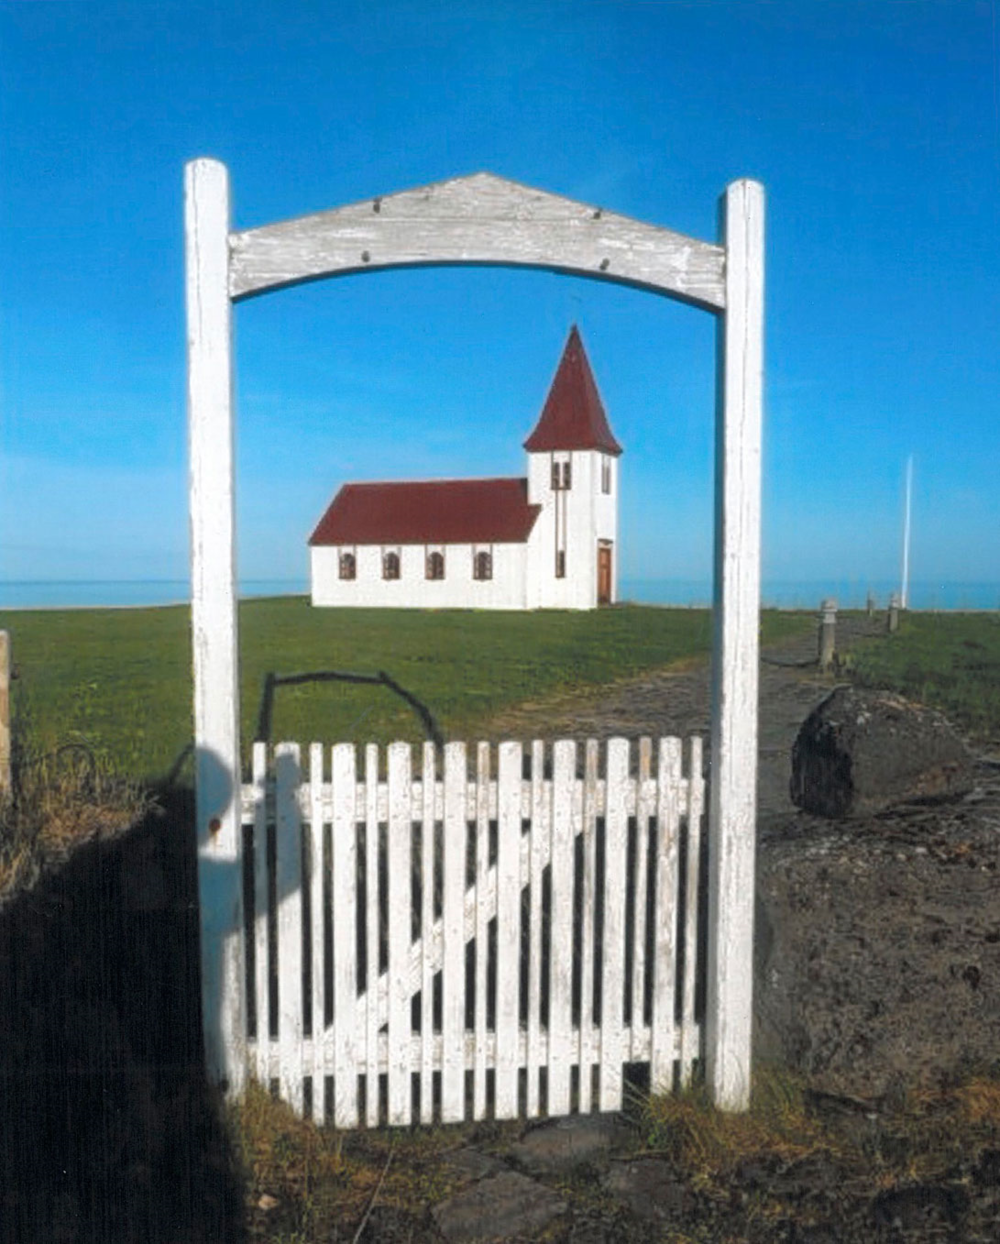 Sharon's forthcoming stories are set in Icelandic scenes like this one.